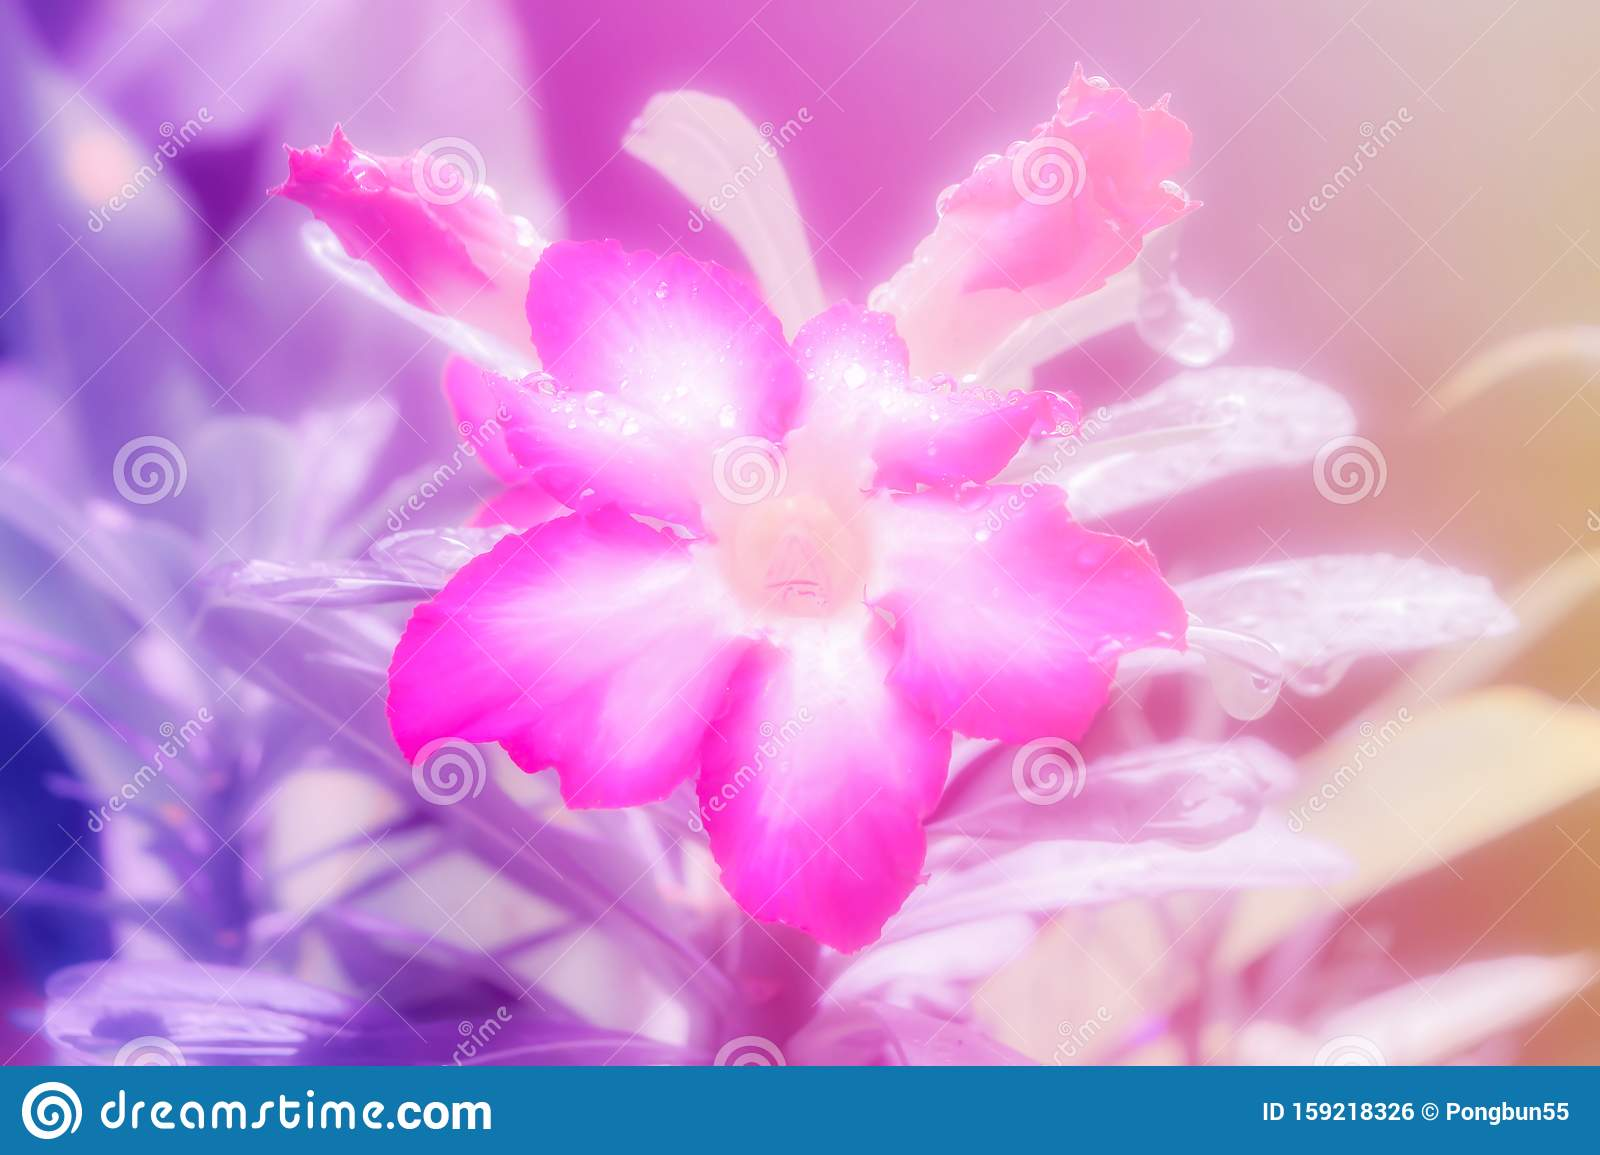 Soft Focus Pink Flower With Dew Drops Fresh Spring Nature